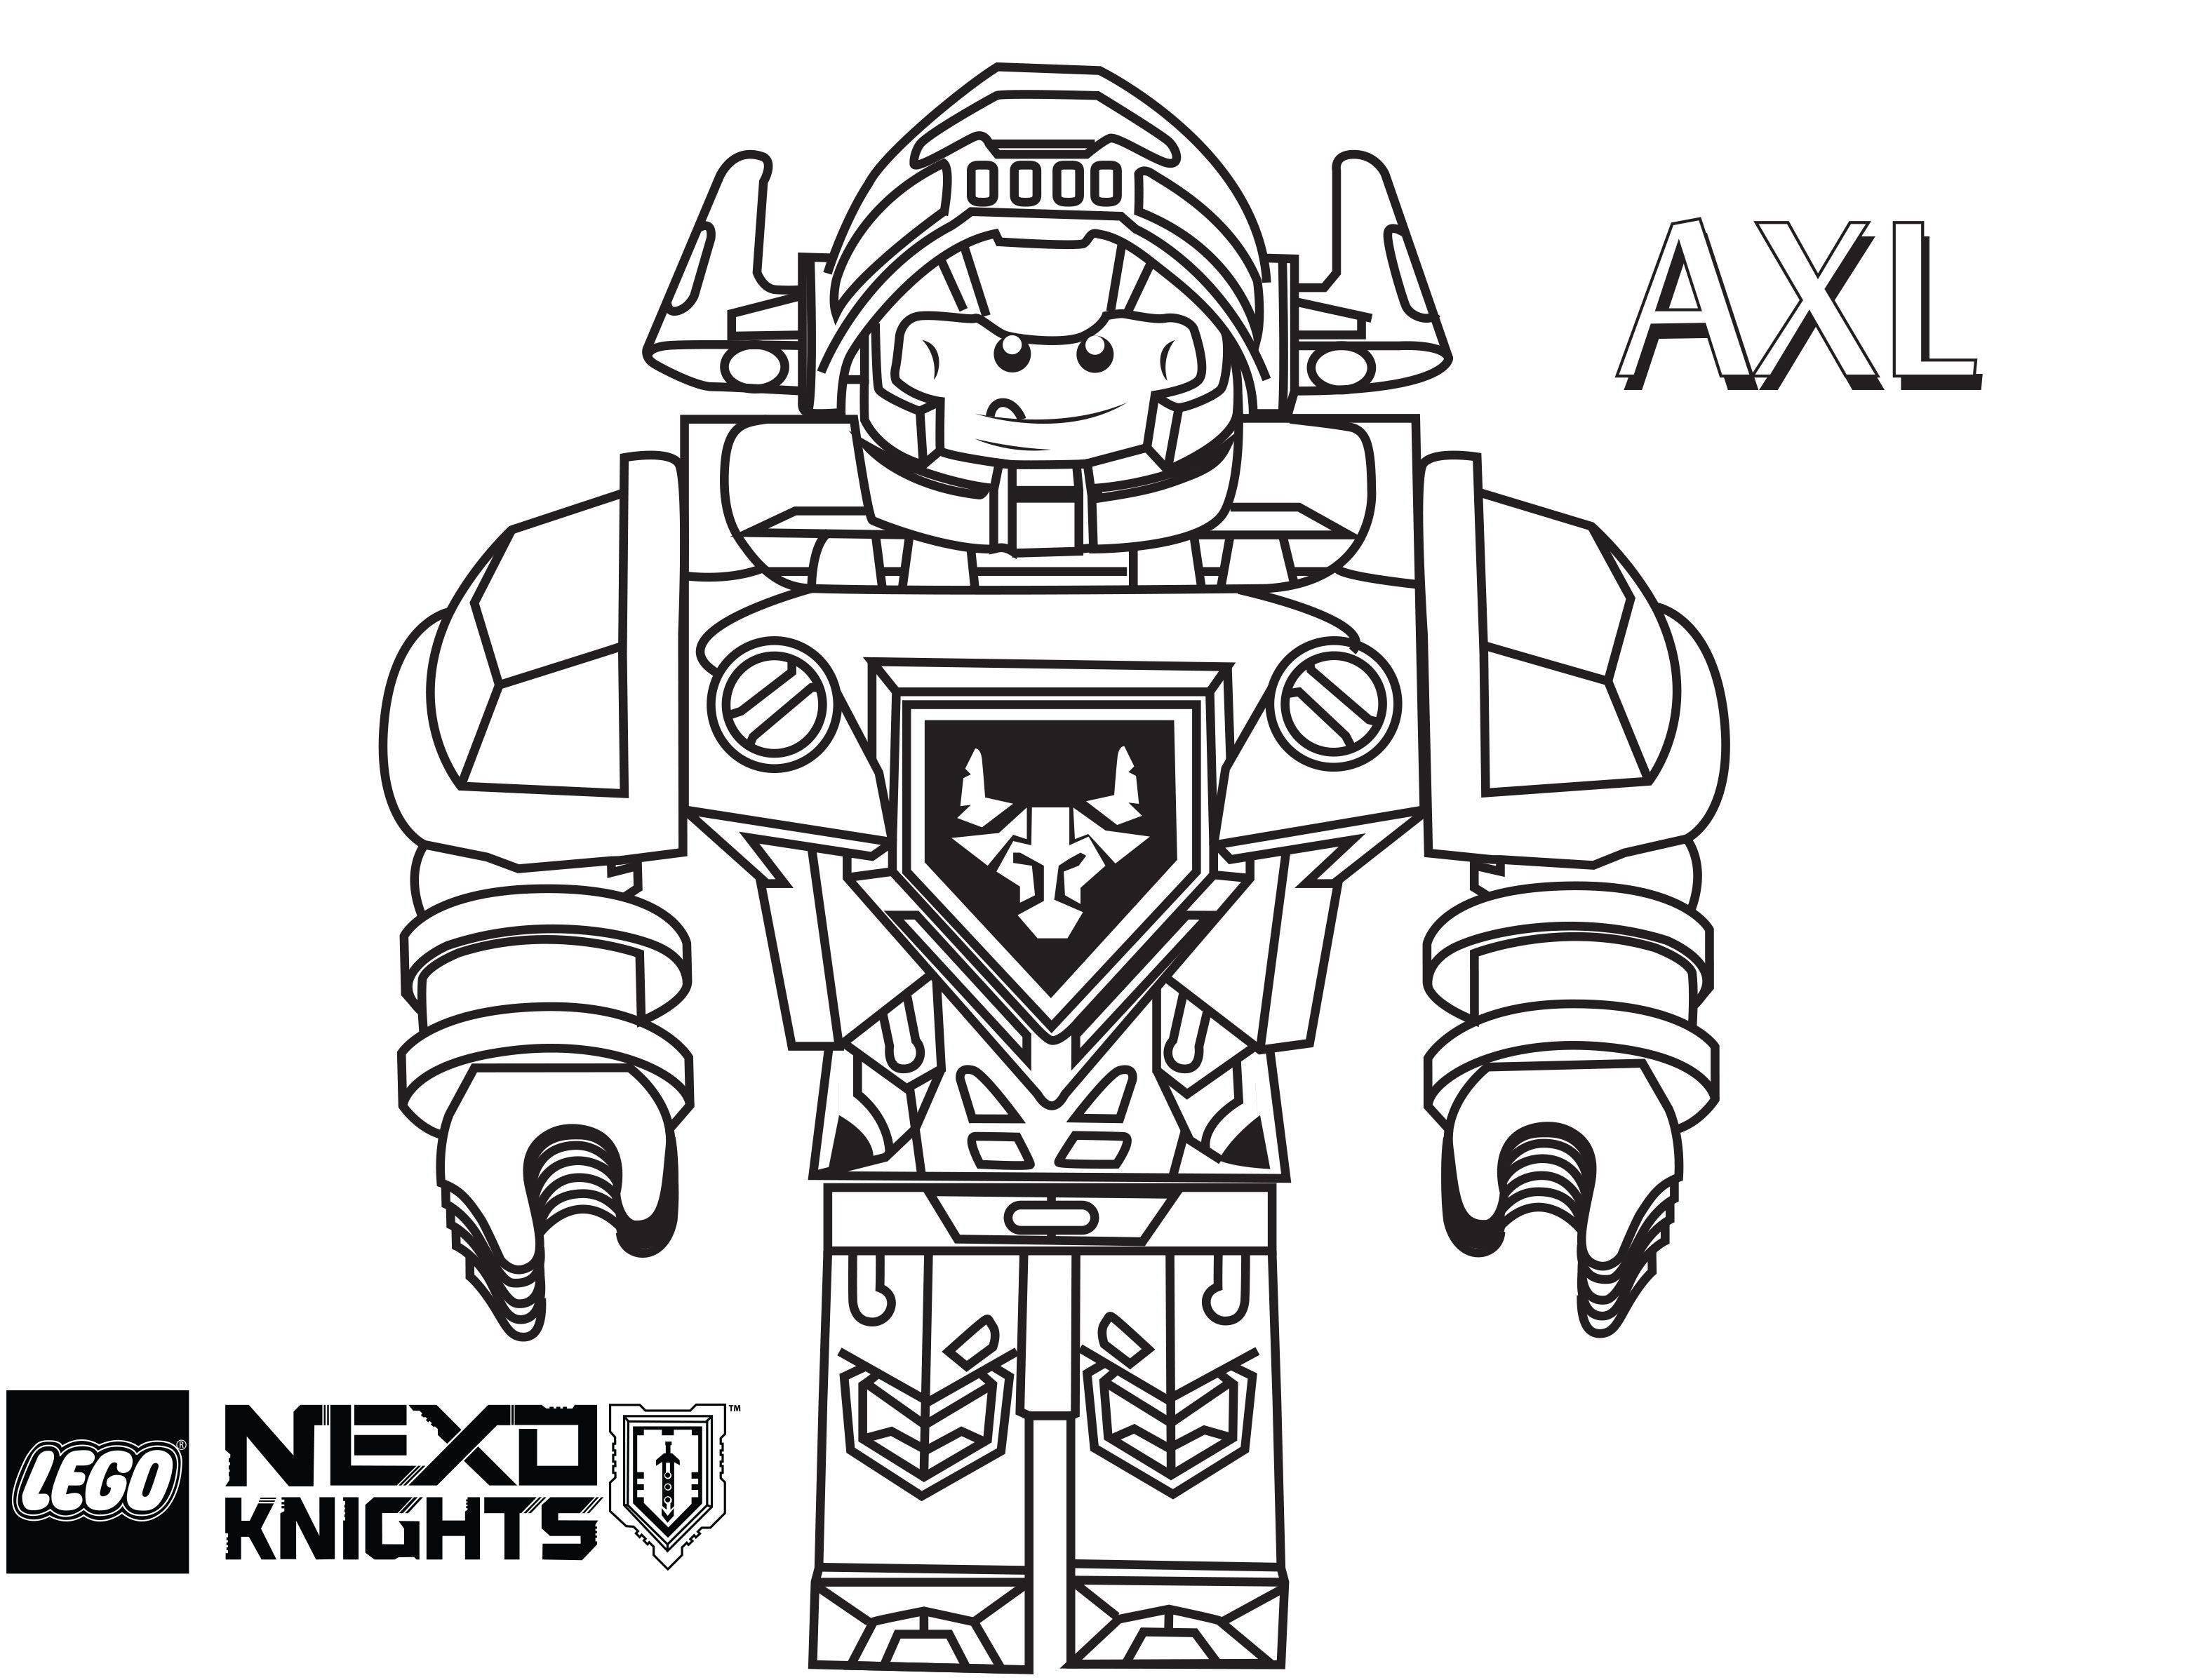 Print Out And Enjoy Coloring LEGO Nexo Knights Pages We Have A Large Selection Of Printable Sheets Available In PDF Format